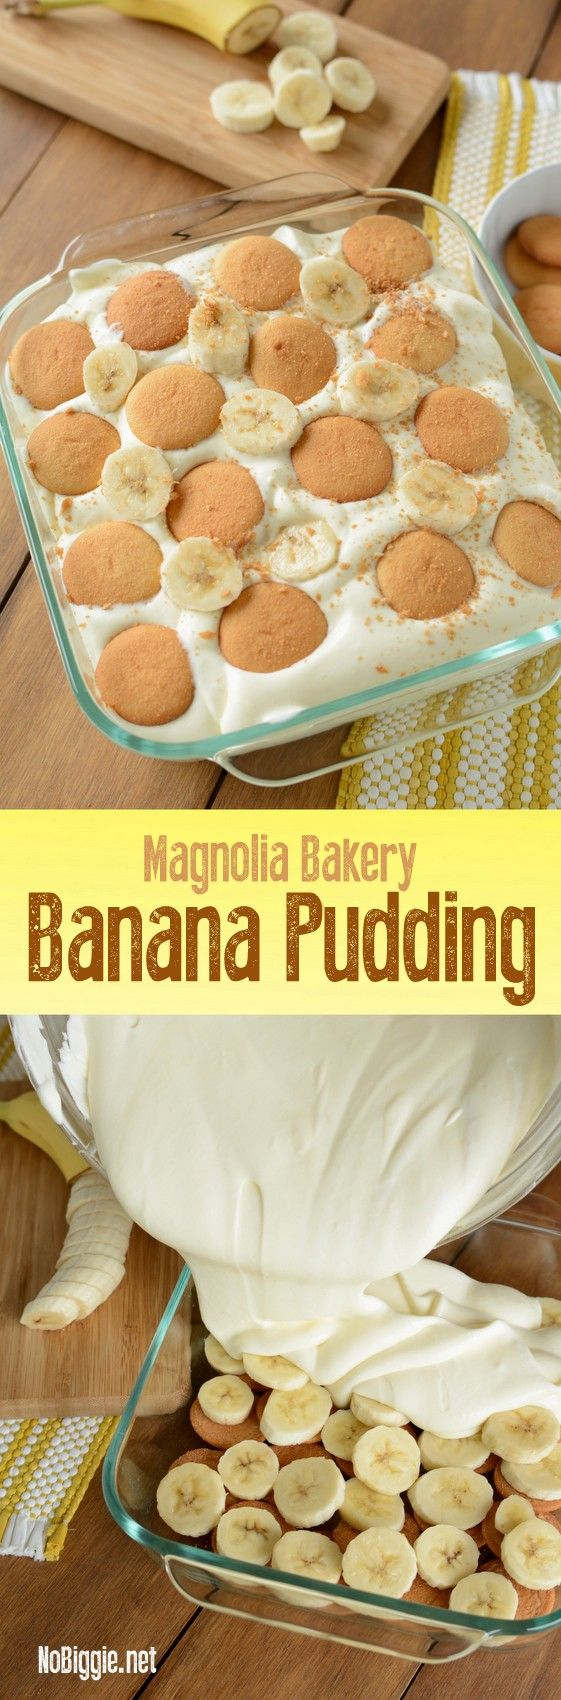 Magnolia Bakery Banana Pudding ~ The BEST... It's irresistible